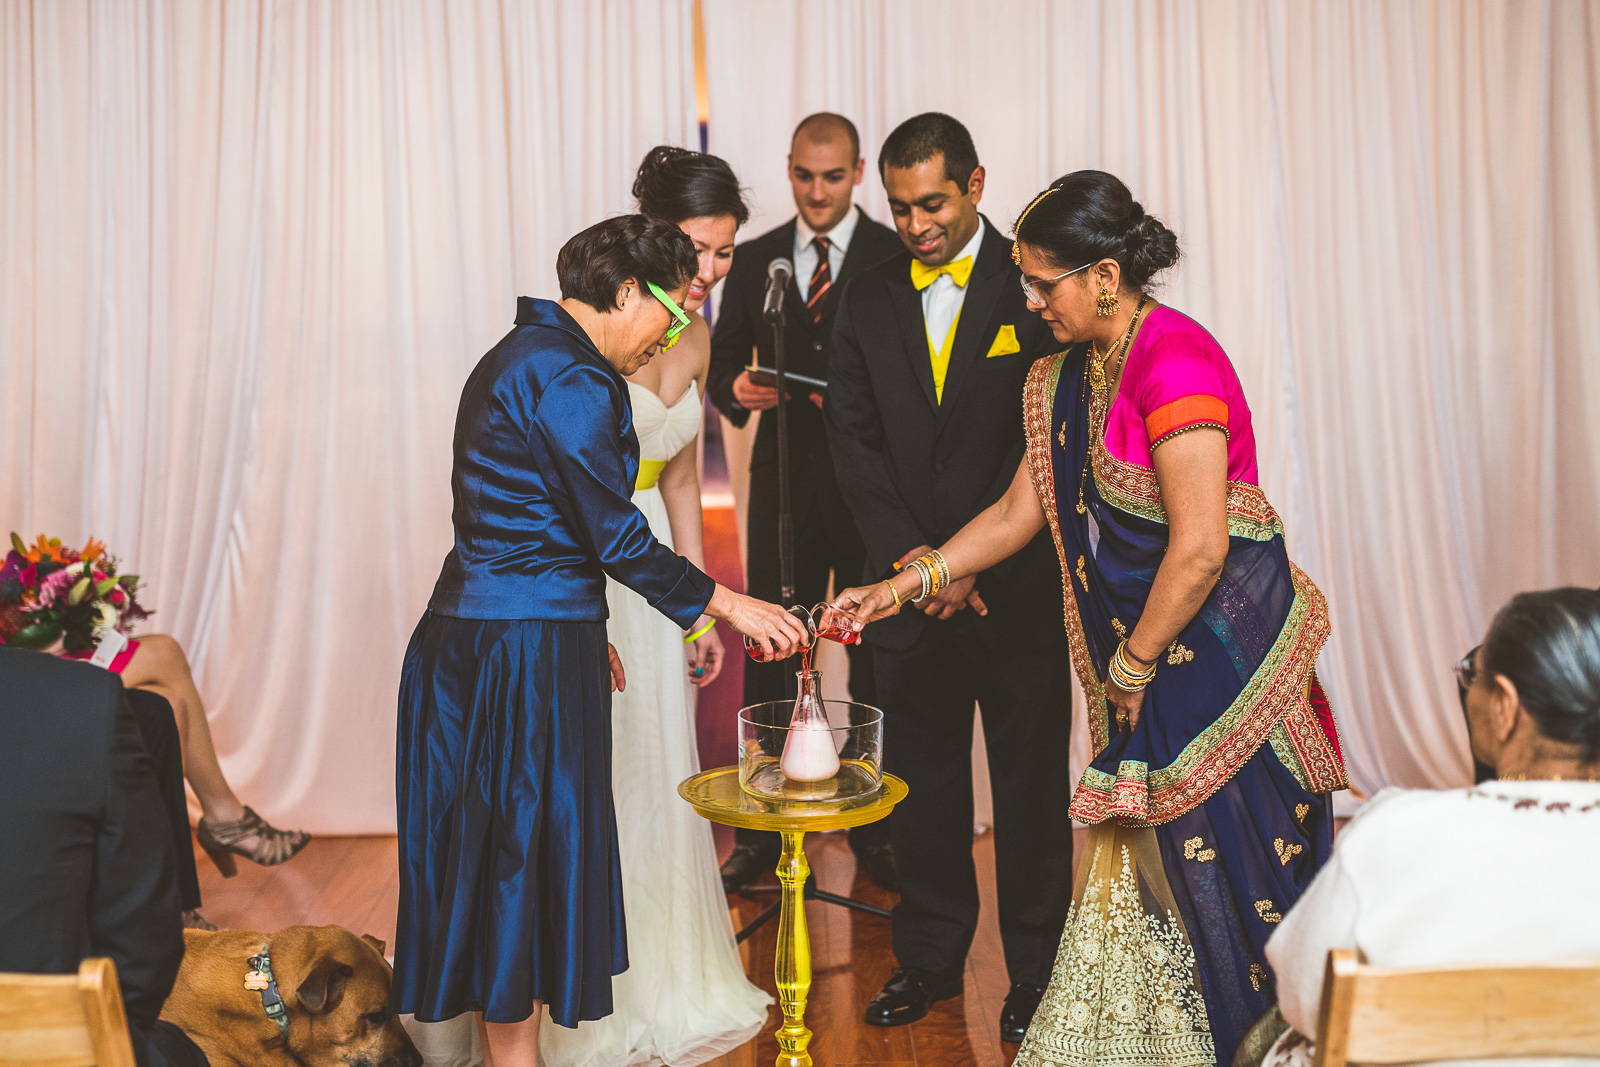 33 science stuff - Jackie + Raj // Chicago Wedding Photography at Floating World Gallery